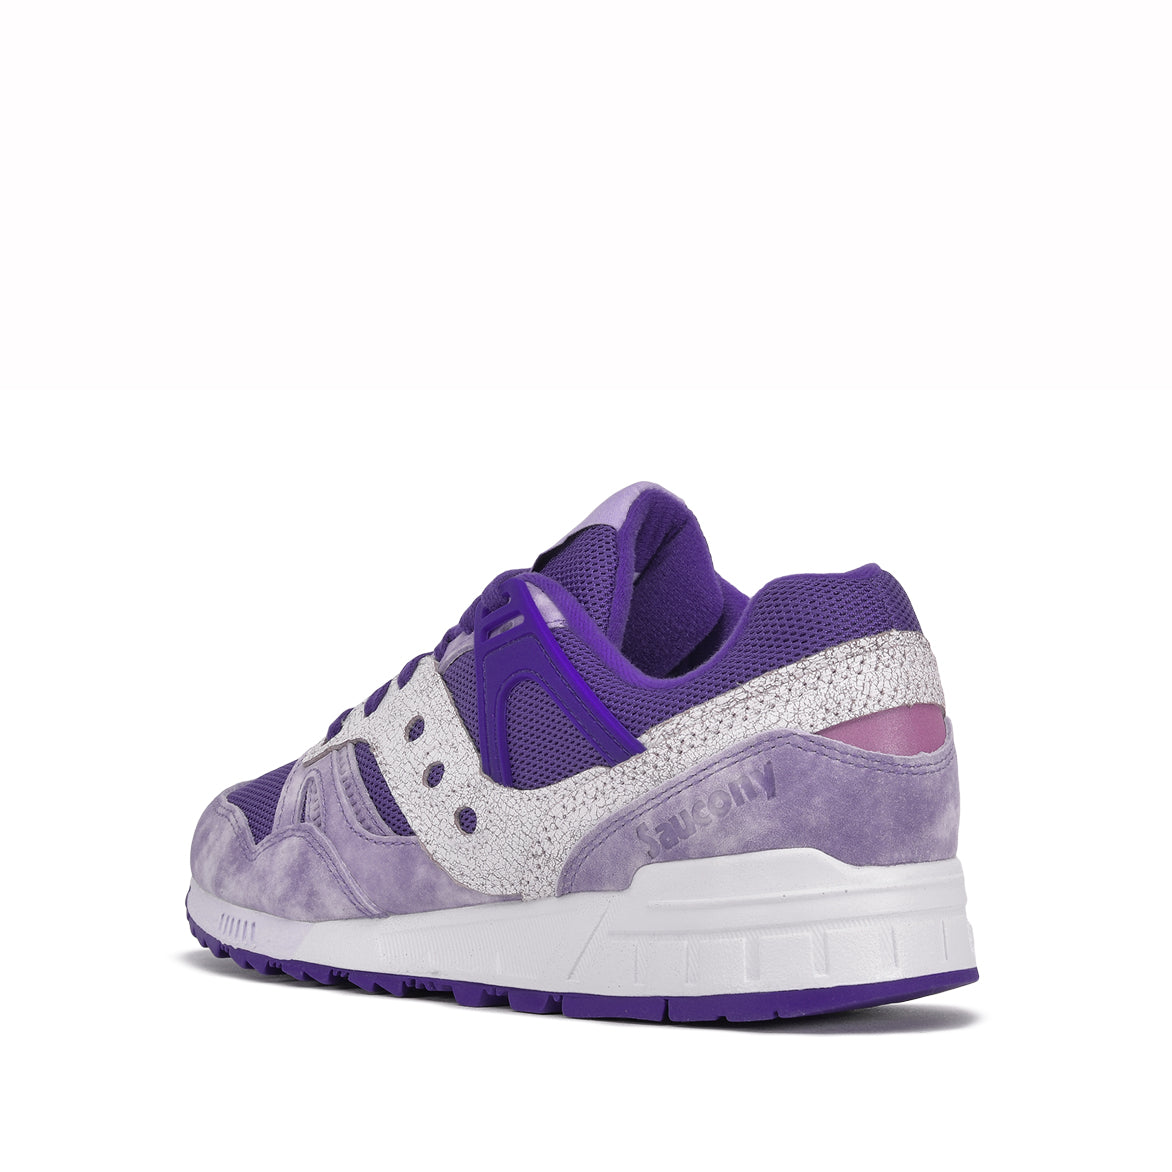 "GRID SD ""GARDEN DISTRICT"" - PURPLE / WHITE"